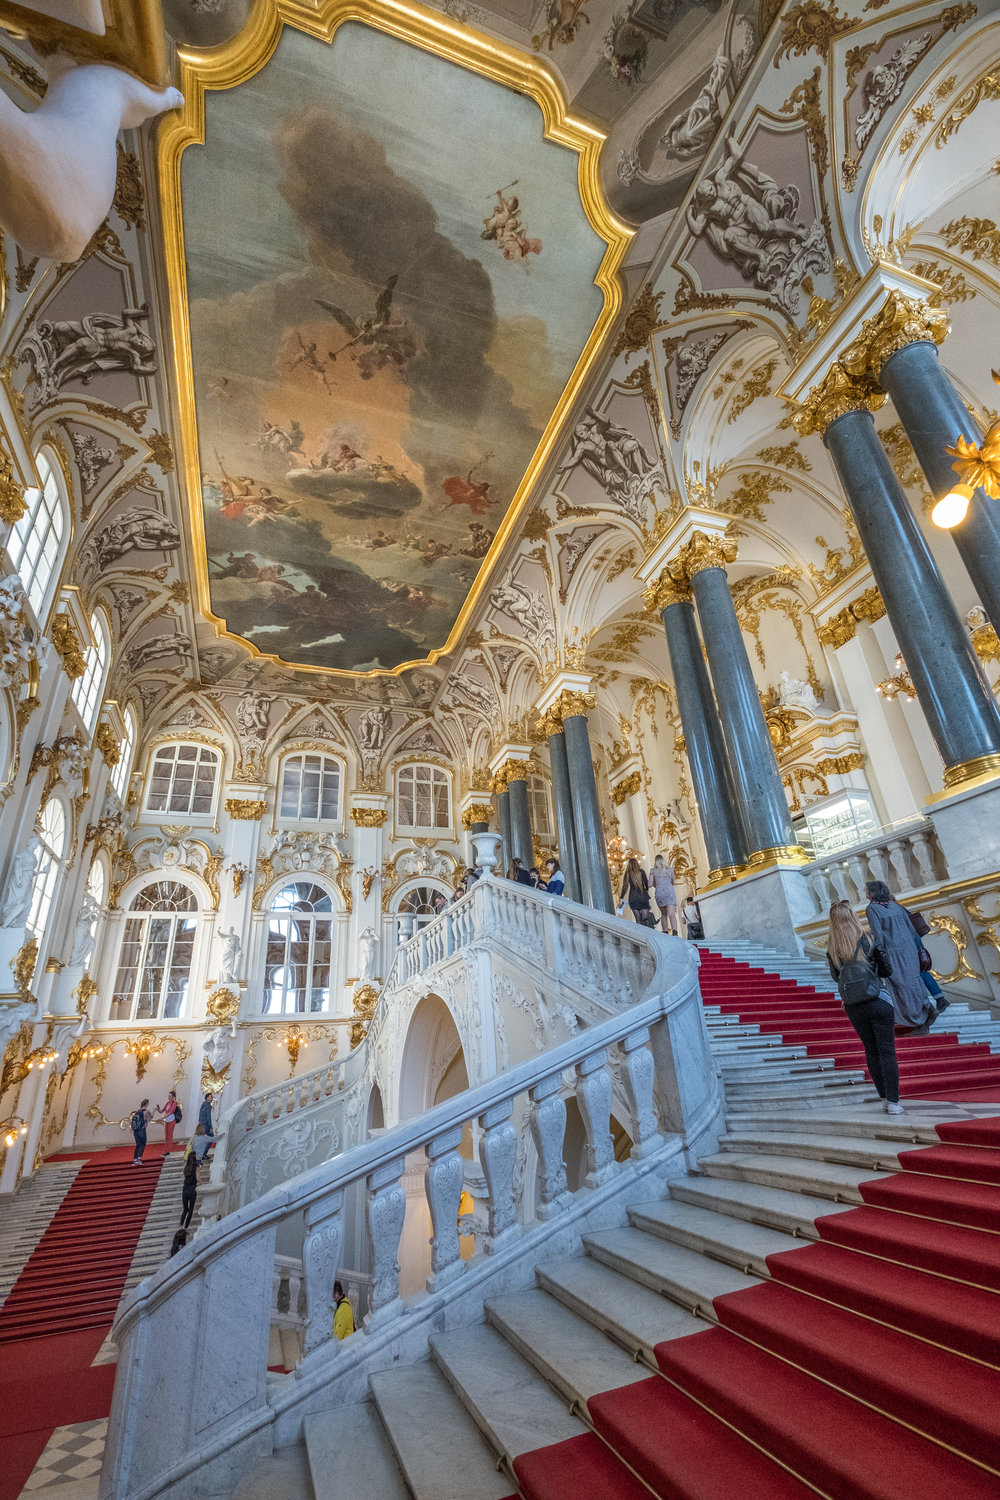 Grand Stairway inside the Hermitage Museum